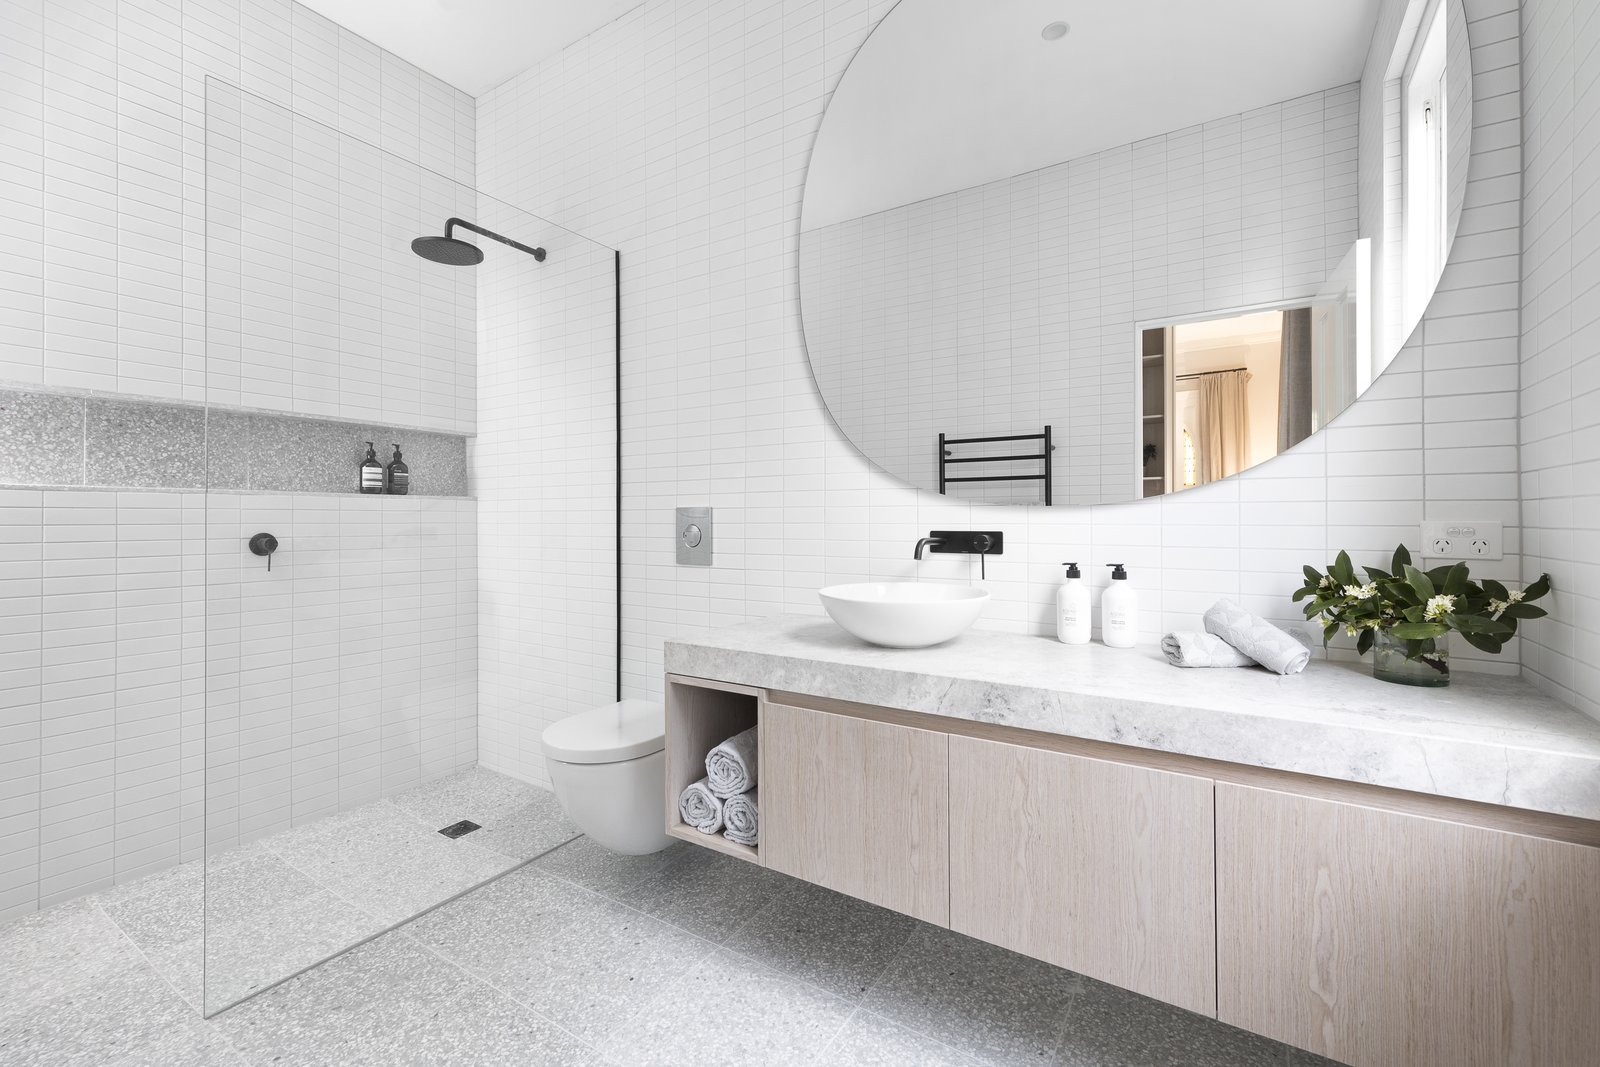 Bath Room, Marble Counter, Enclosed Shower, and Full Shower  Photo 8 of 12 in A Progressive Melbourne Development Company Helps Facilitate an Exquisite Home Renovation